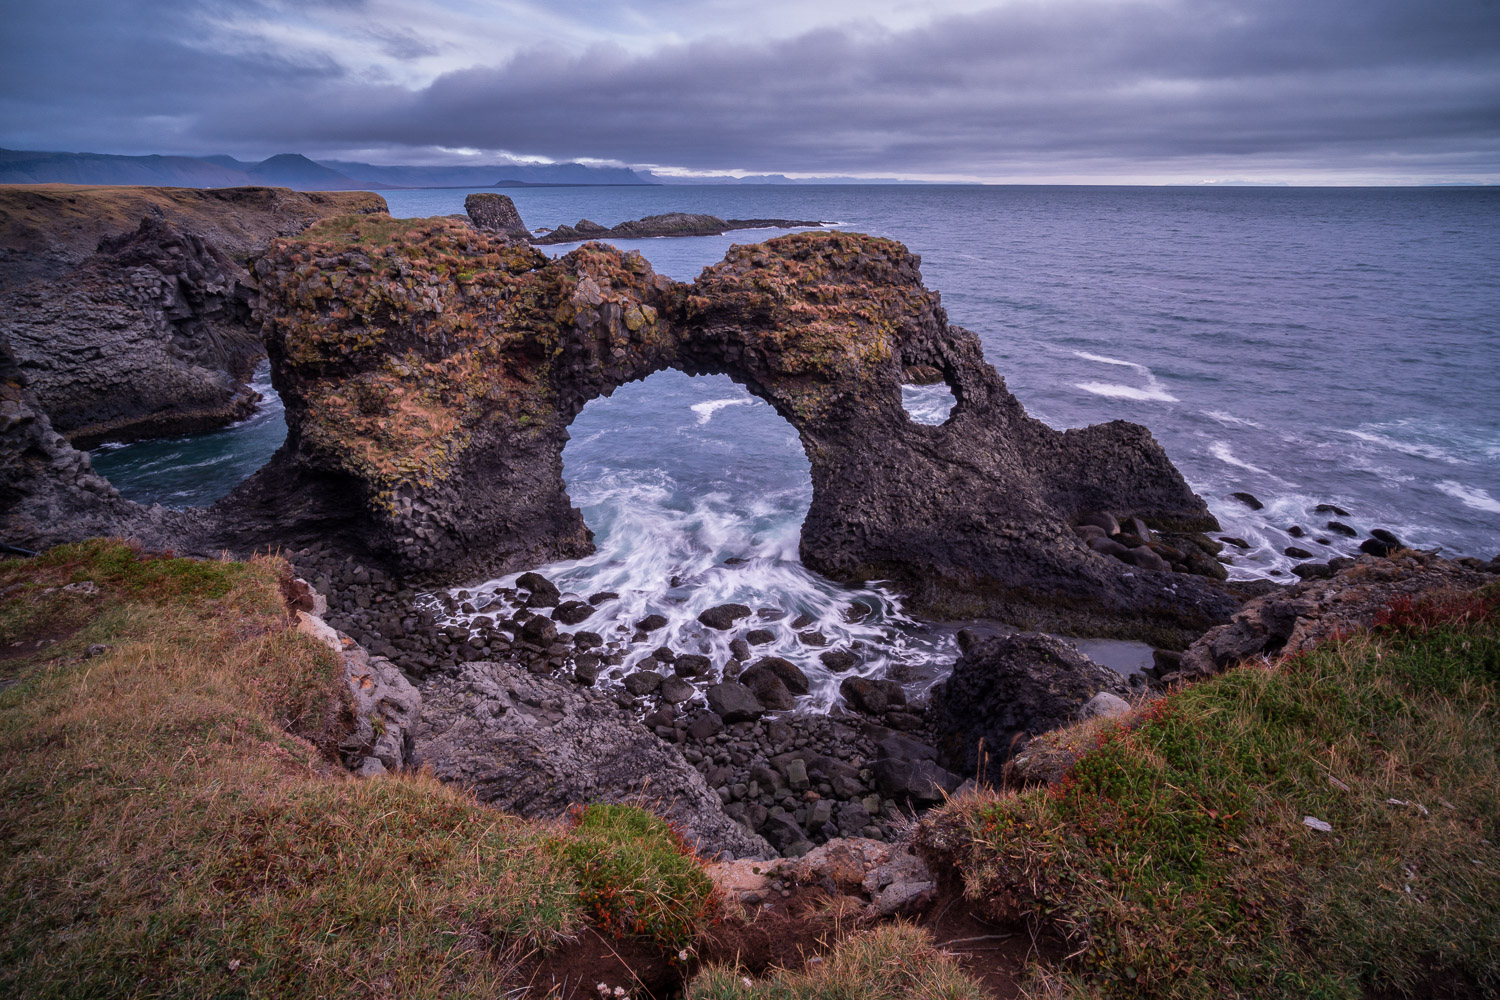 Gatklettur, or Arch Rock, in Arnarstapi, Iceland - 10 Dos and Don'ts for Mastering Your Tripod